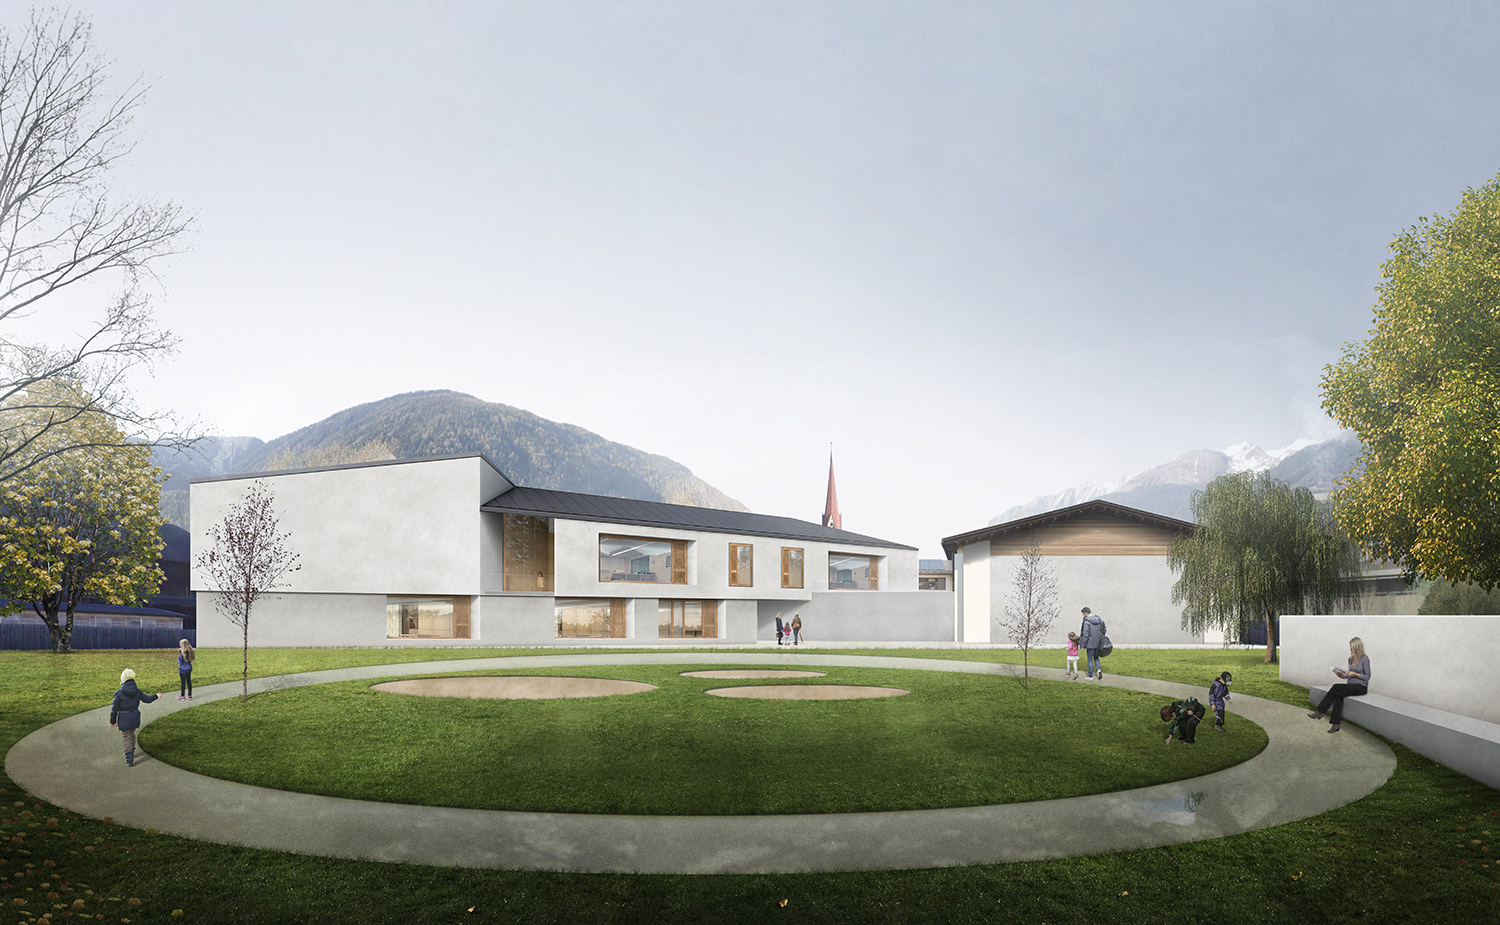 RVA is finalist in the competition for the Kindergarten in St. Georgen of Brunico, Italy